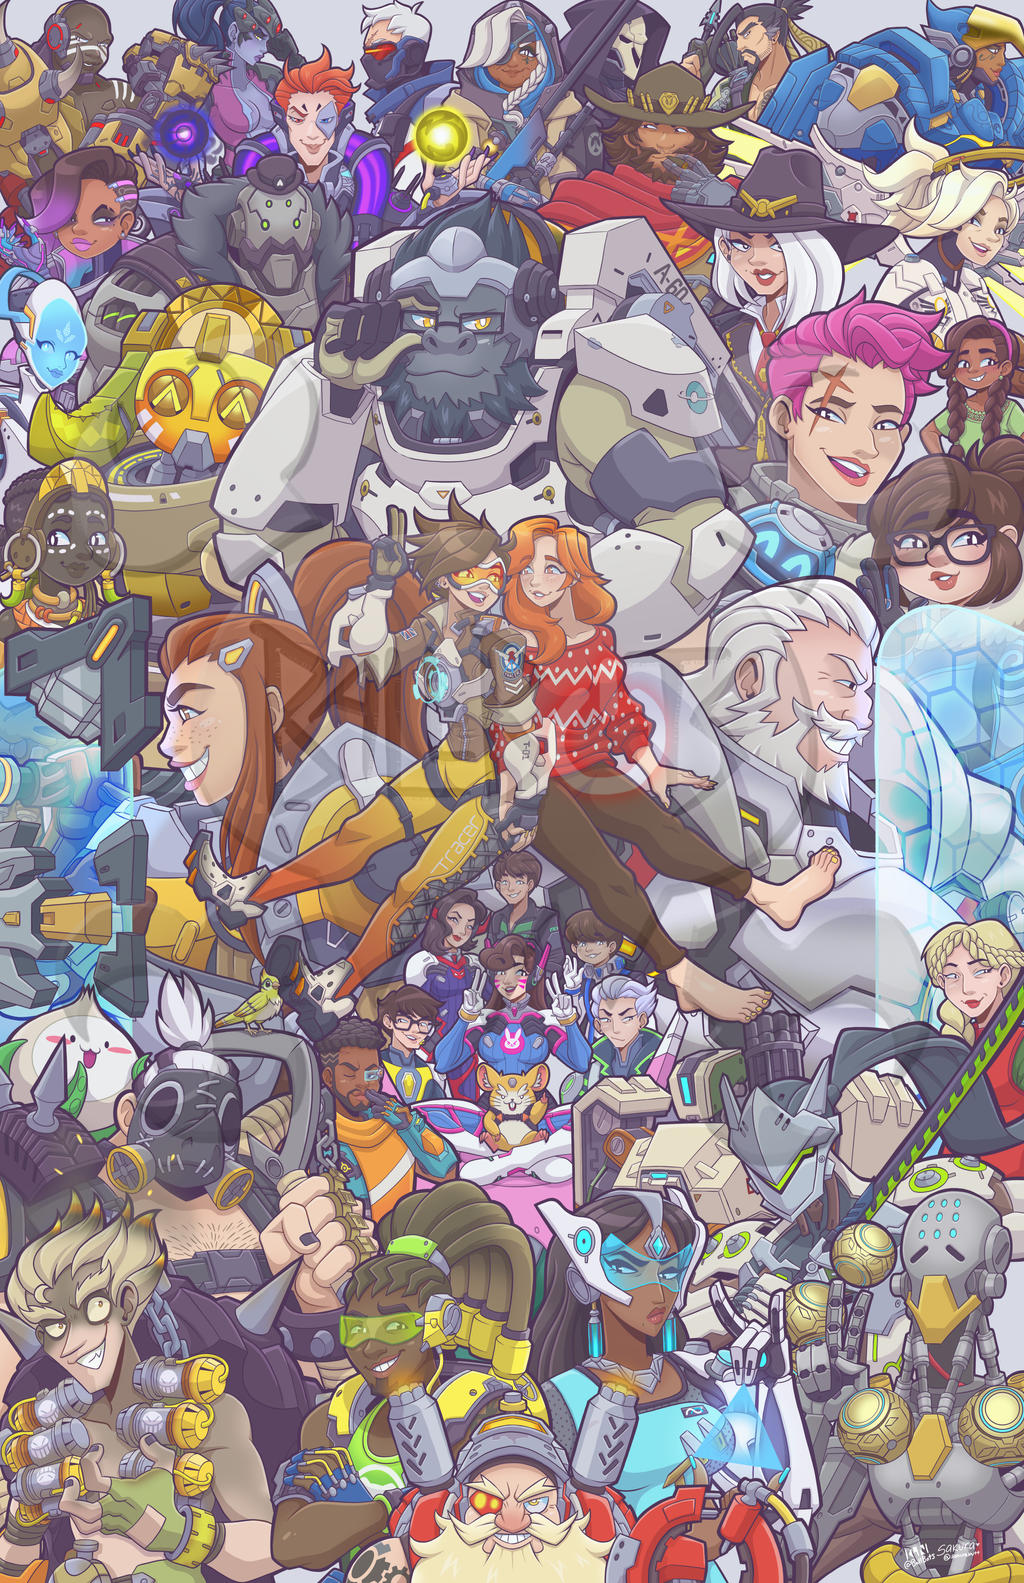 Overwatch Fanart Poster By Ballbots On Deviantart